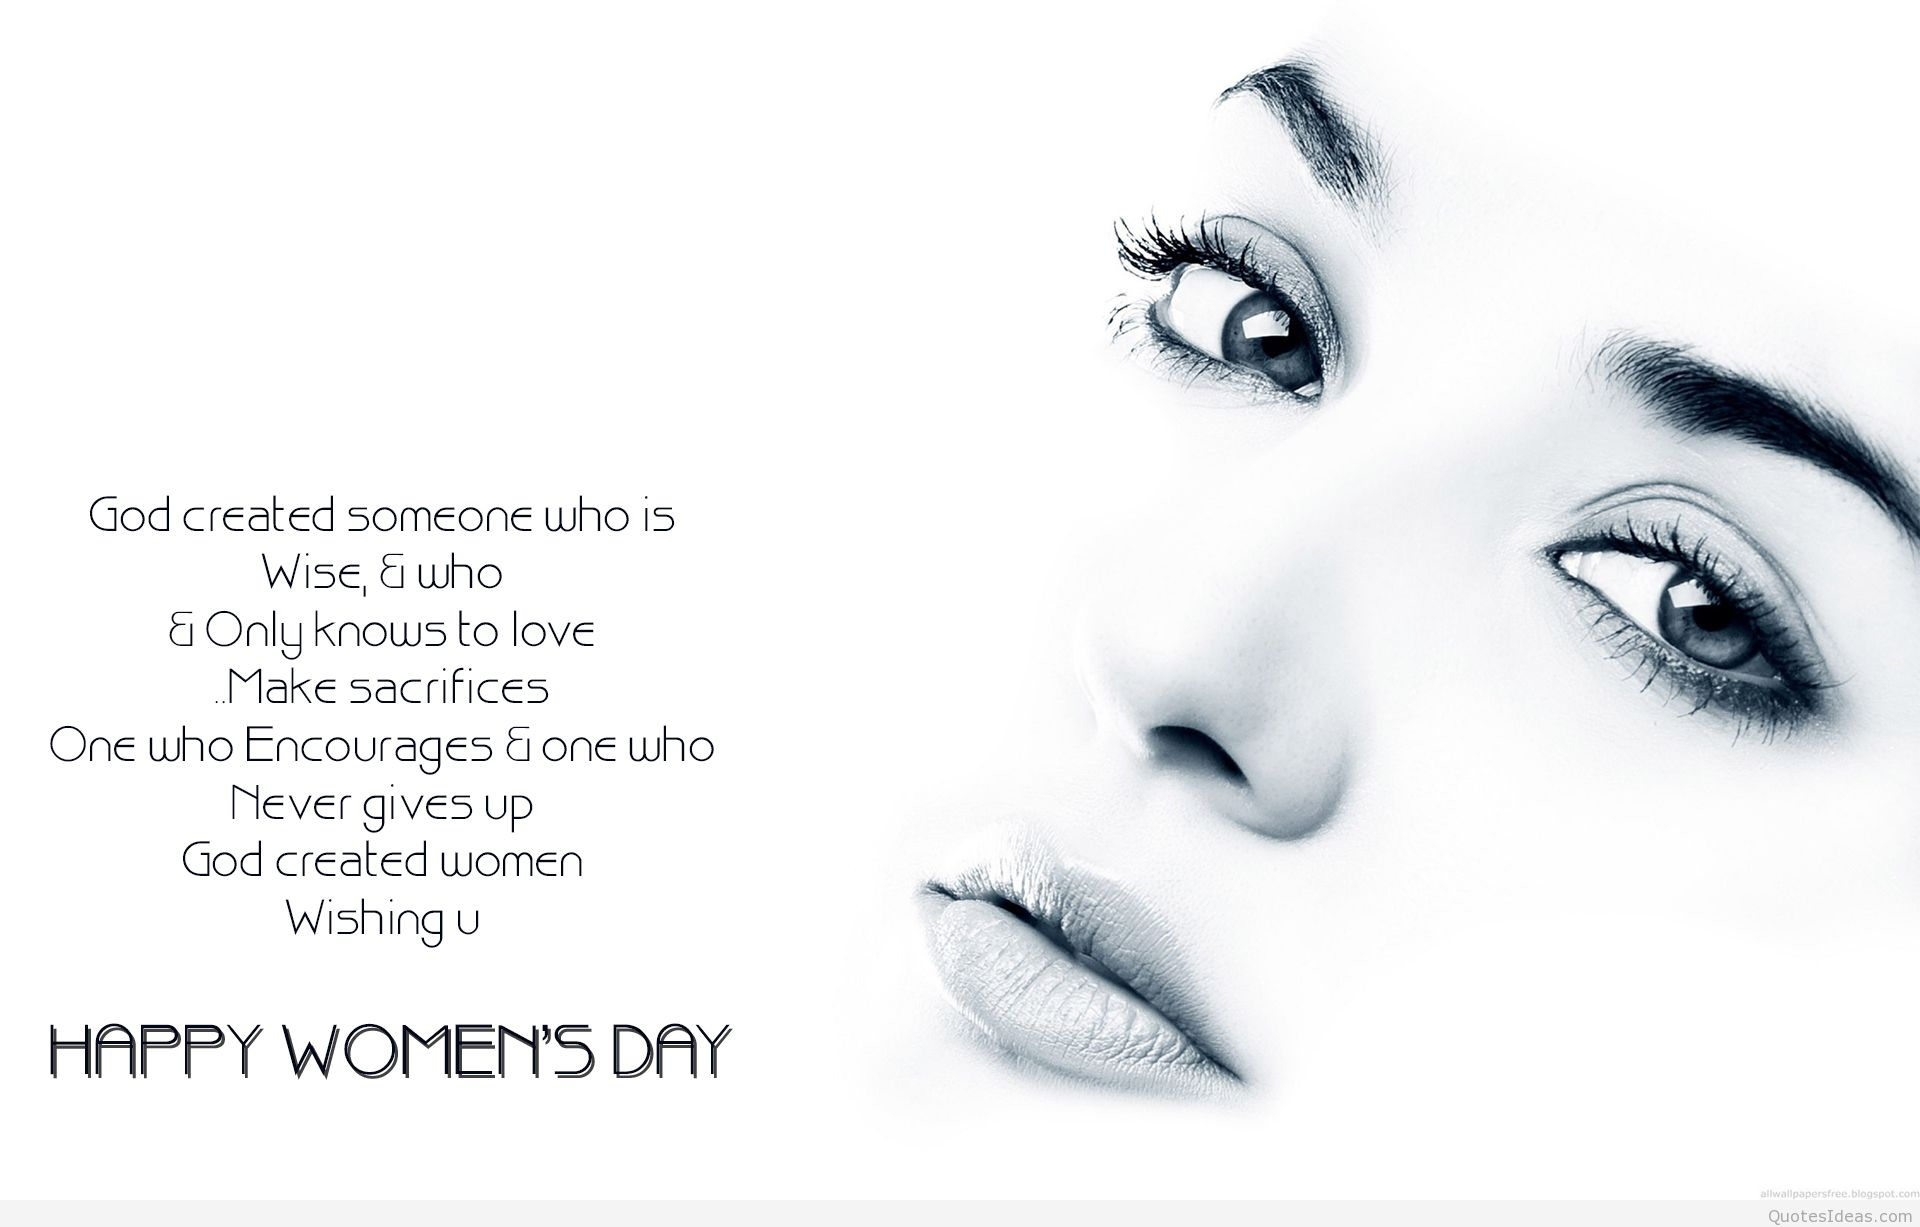 Women's Day Image with Quotes